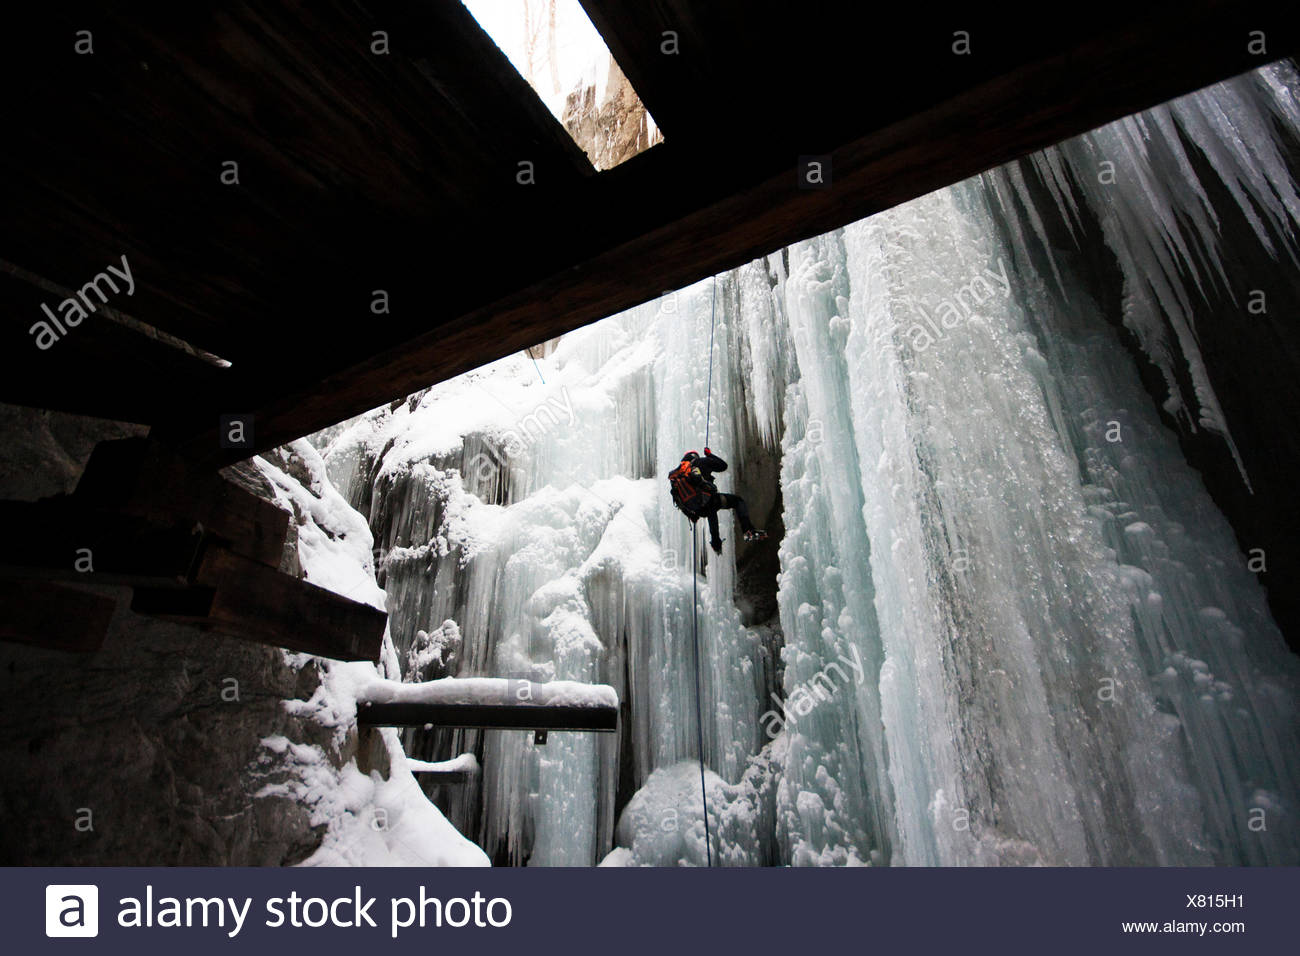 A Man Rappelling From An Icefall - Stock Image